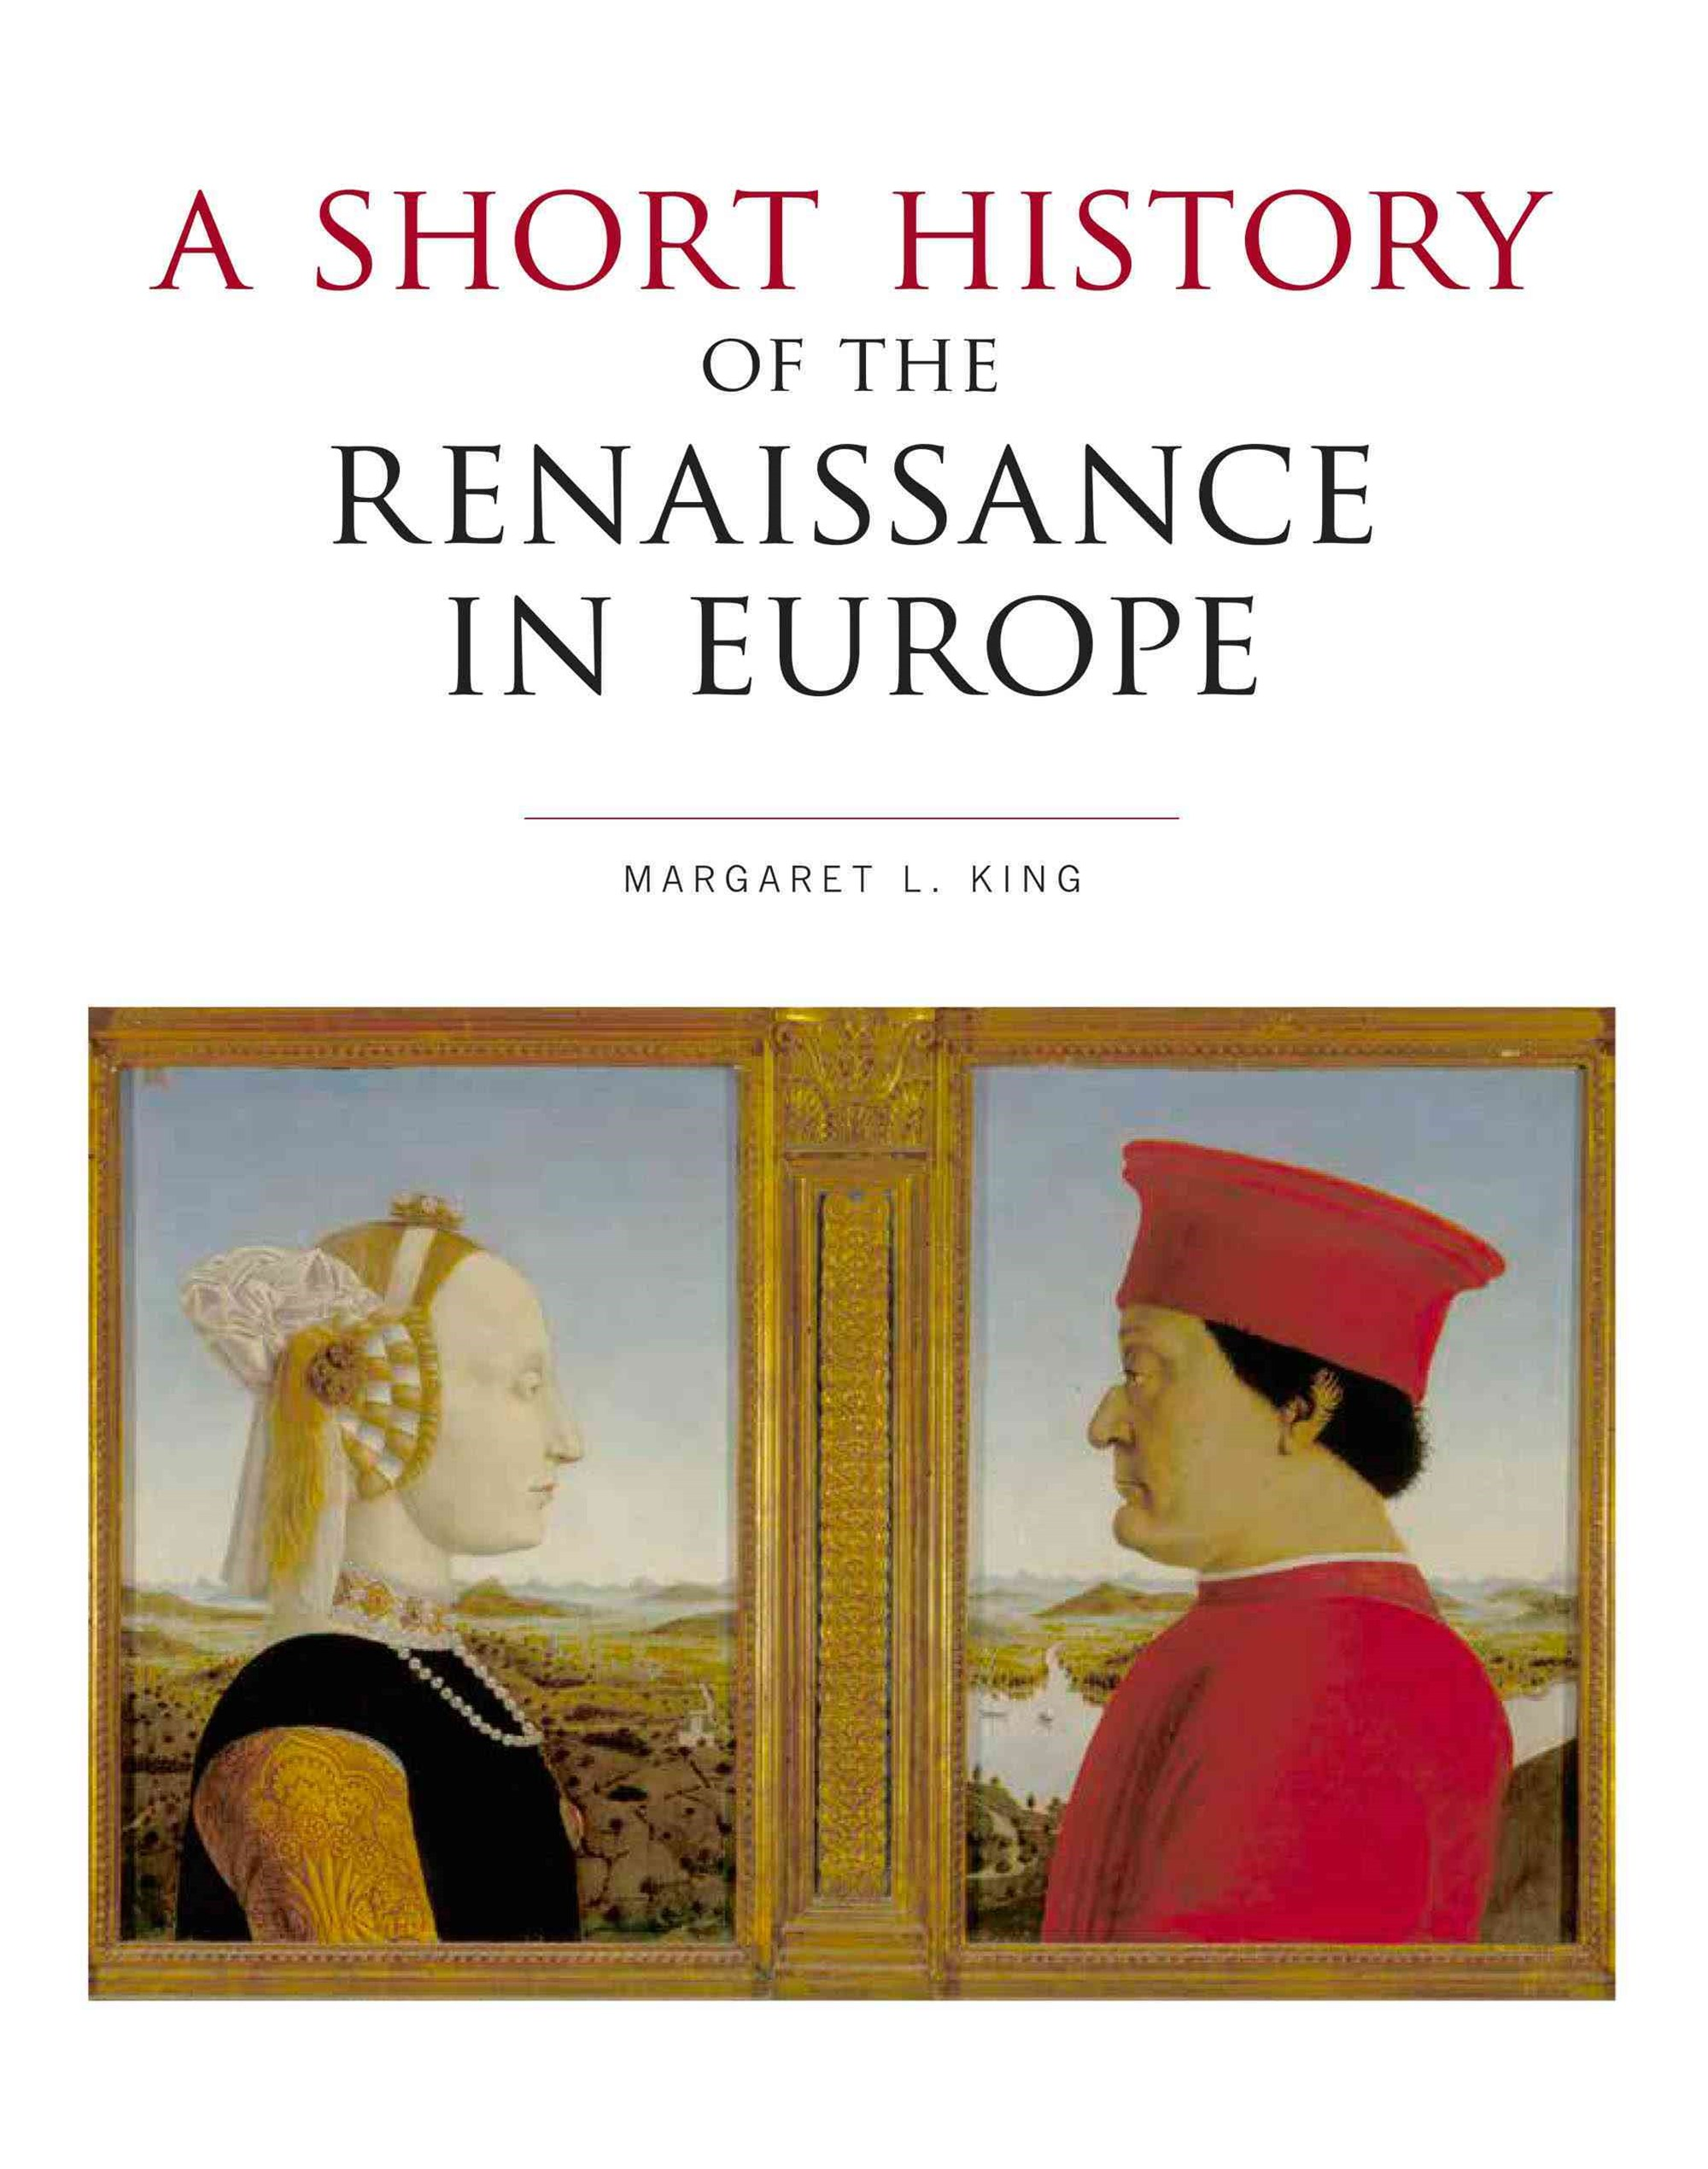 Short History of the Renaissance in Europe